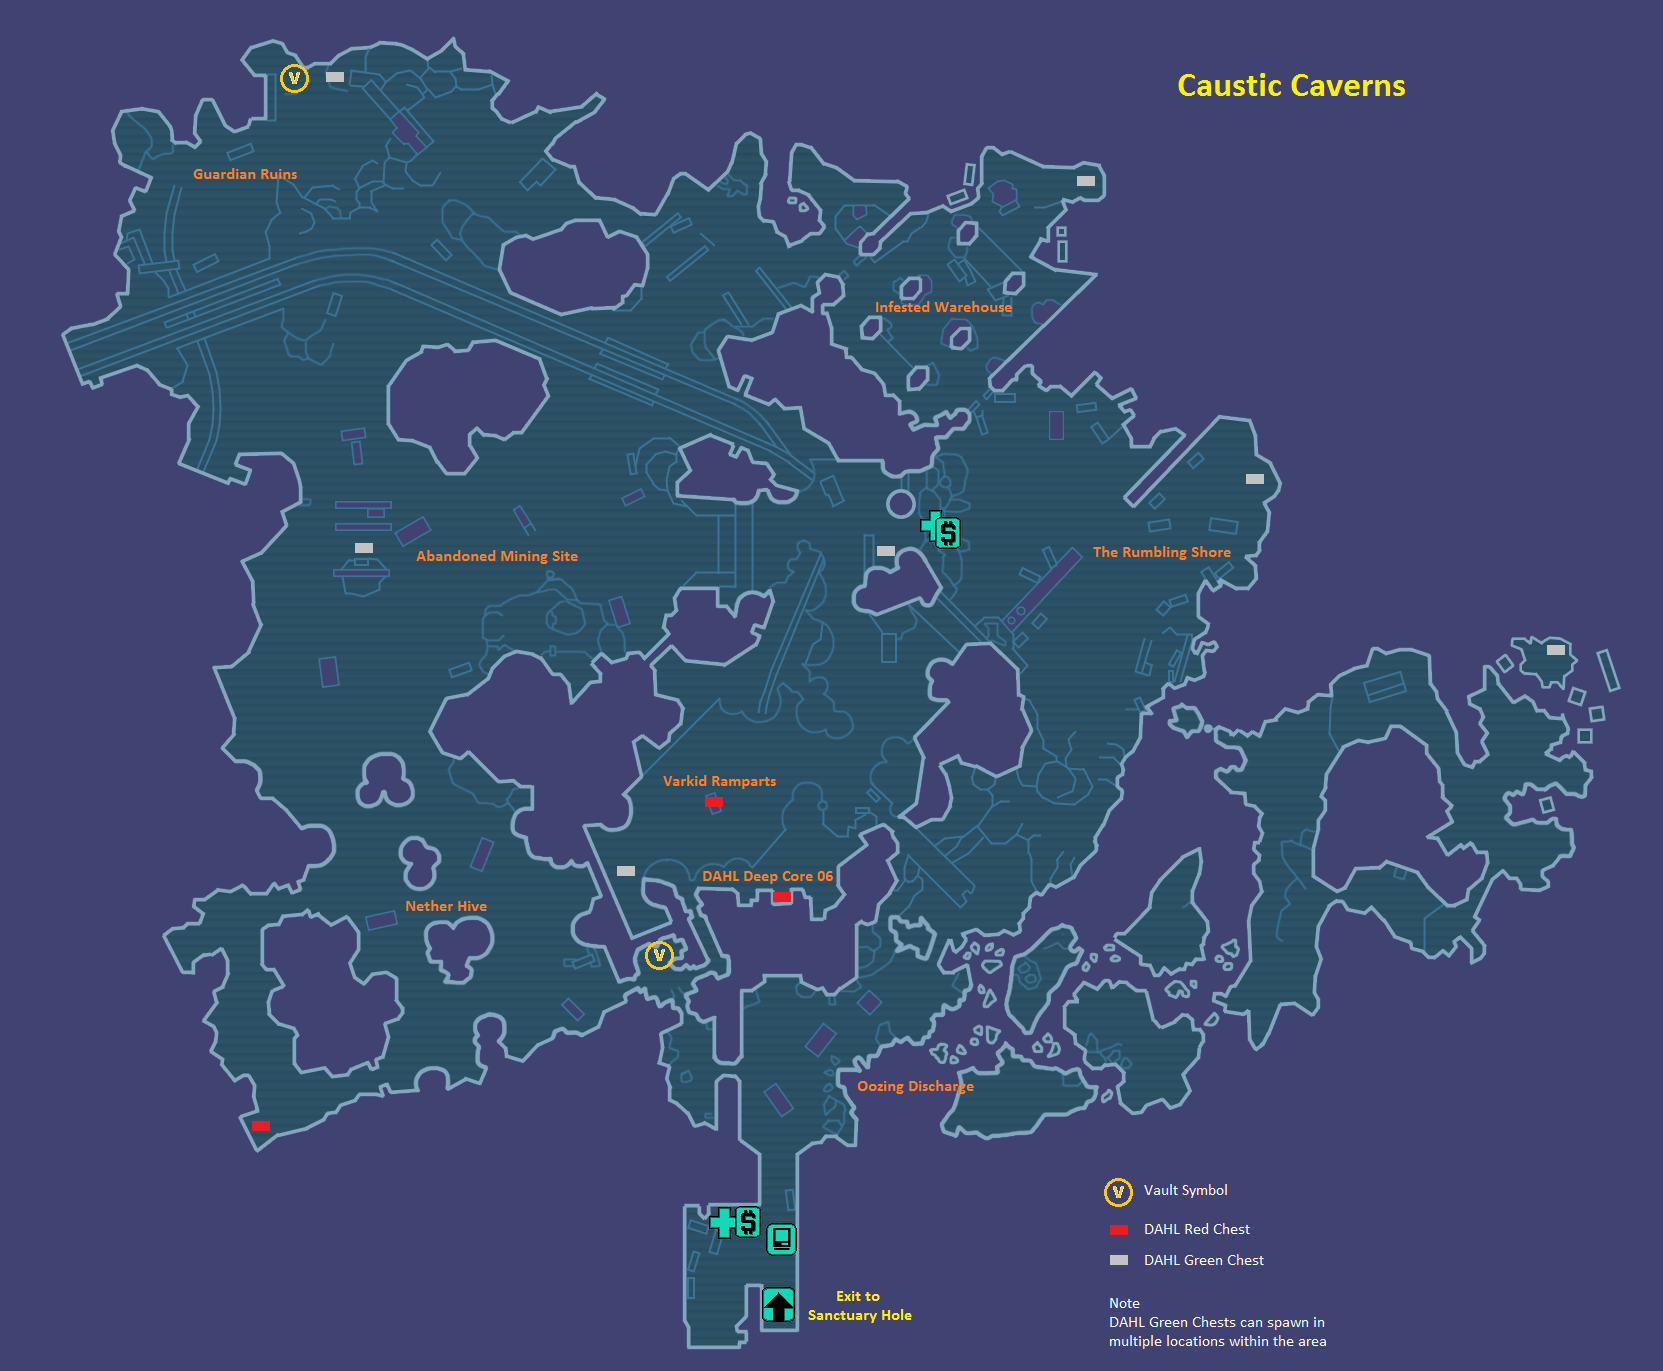 File:Caustic Caverns MapKD.png